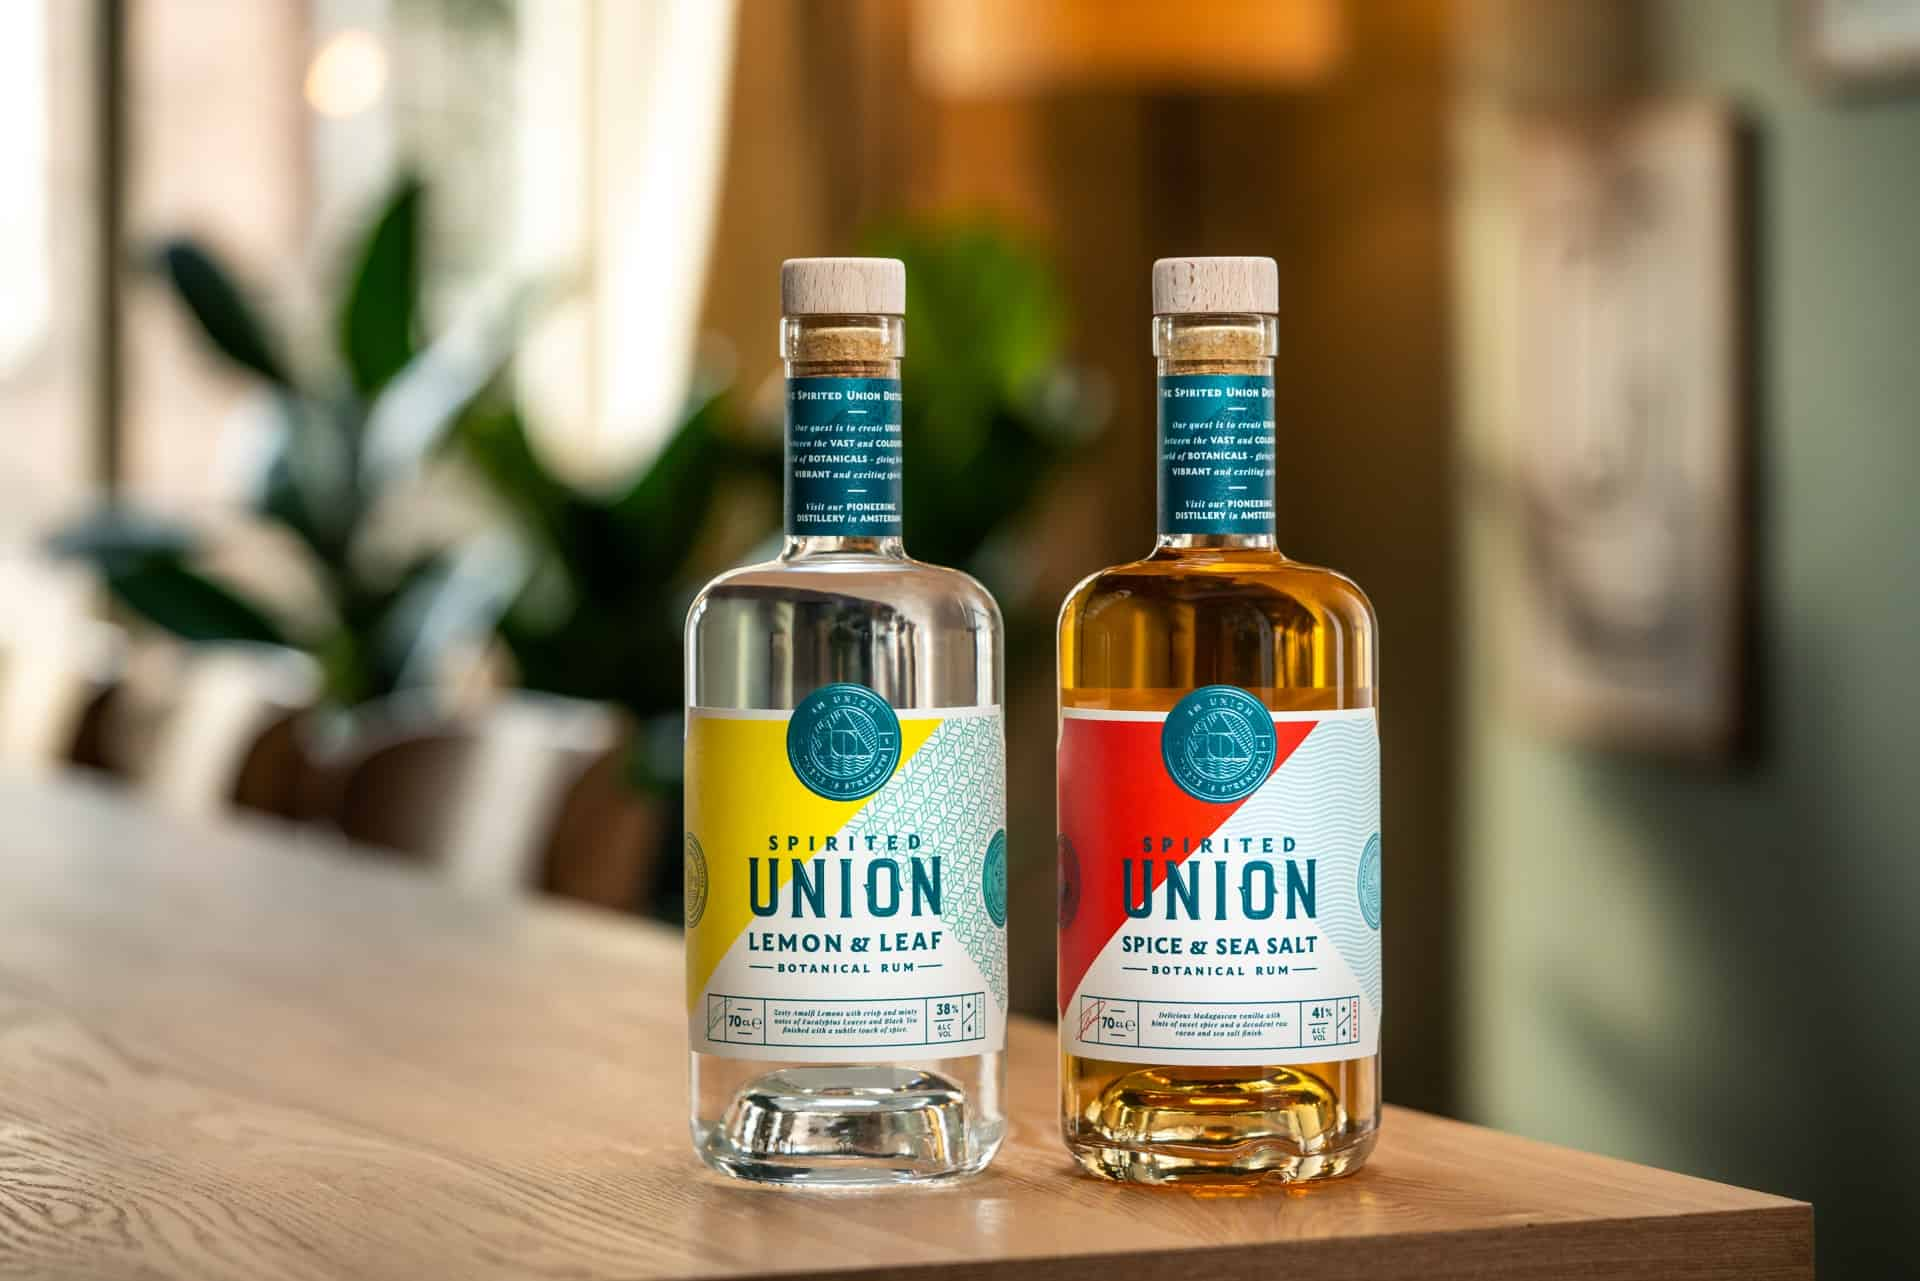 Two Bottles of Spirited Union Botanical Rum